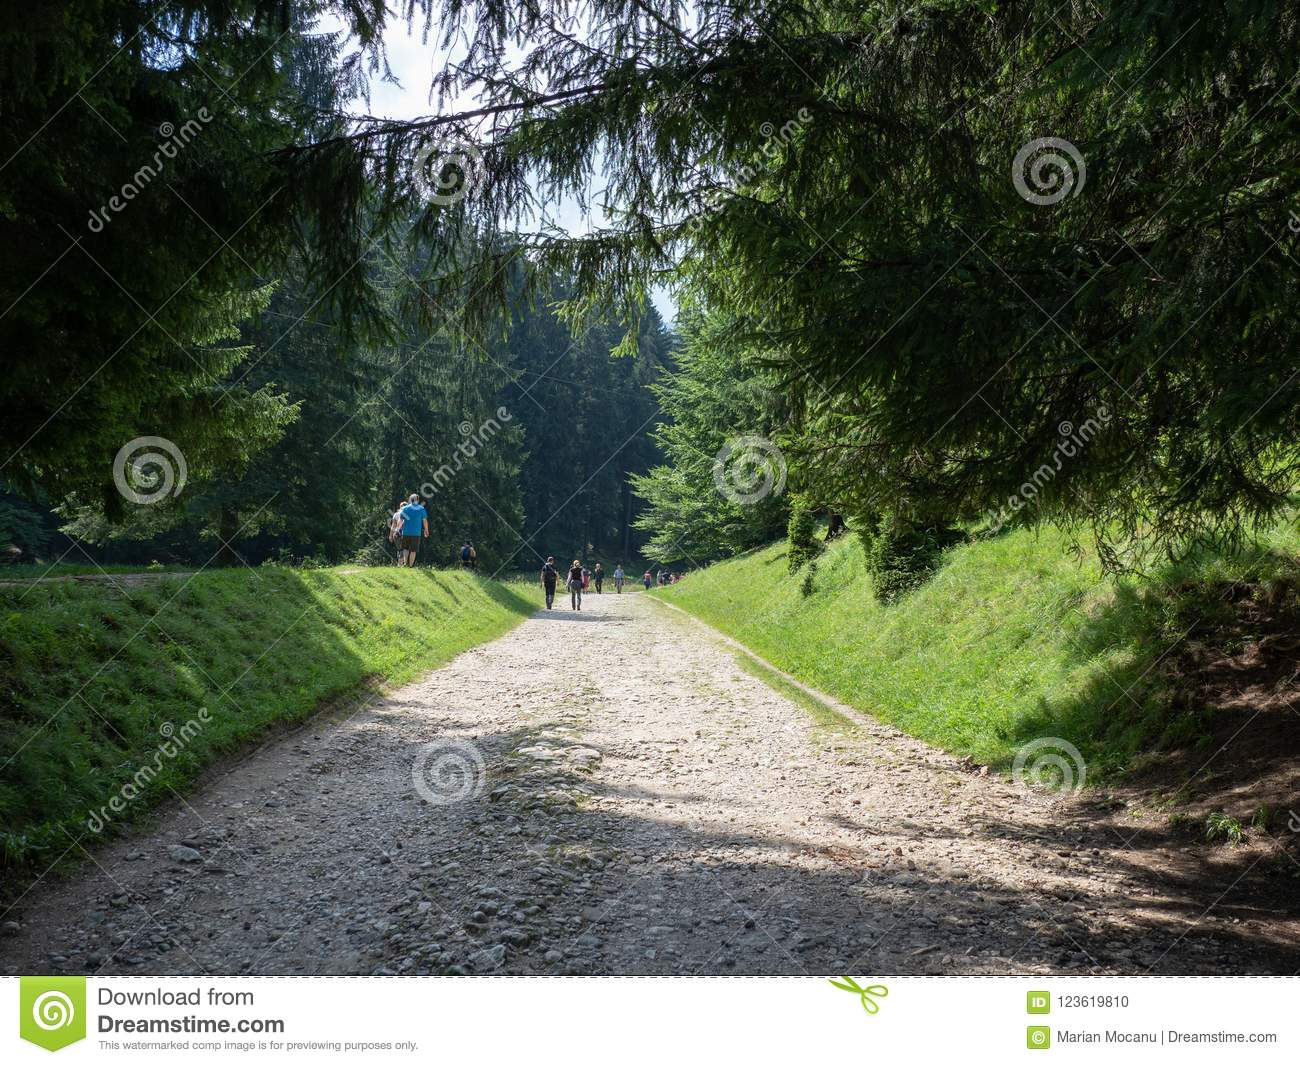 Mountain path in a middle of a forest